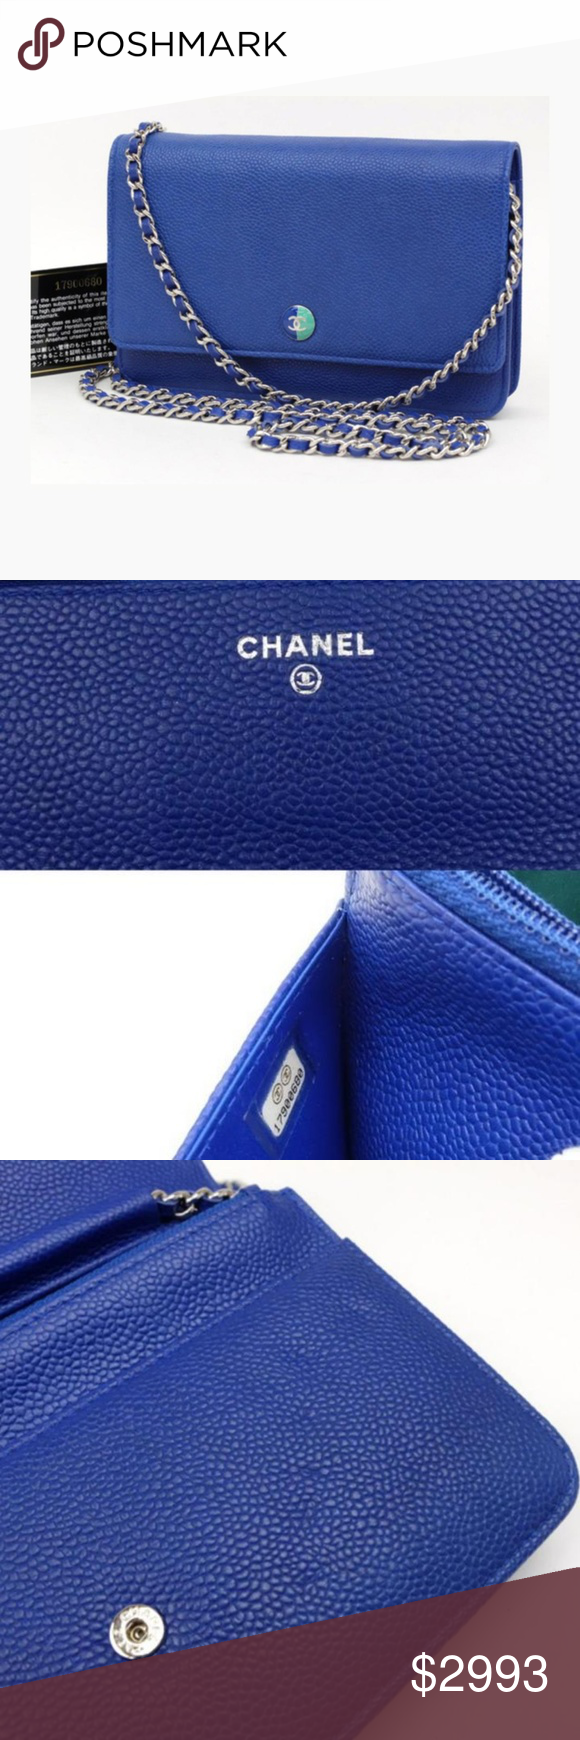 632d2506a2e5 Blue Caviar Leather Wallet on Chain Flap Bag Date Code/Serial Number:  17900680 Made In: Italy Measurements: Length: 7.5